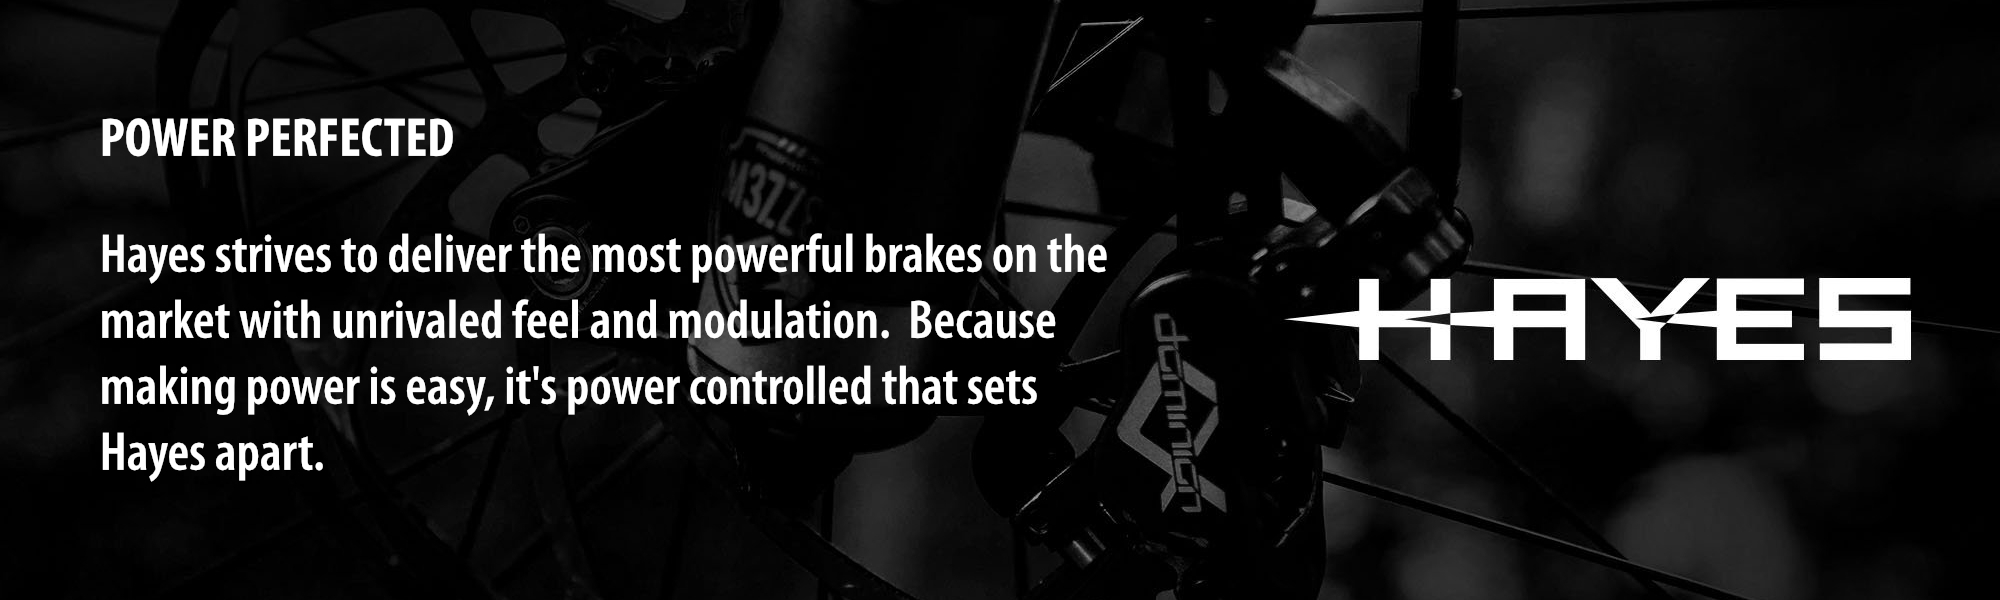 POWER PERFECTED: Hayes strives to deliver the most powerful brakes on the market with unrivaled feel and modulation.  Because making power is easy, it's power controlled that sets Hayes apart.